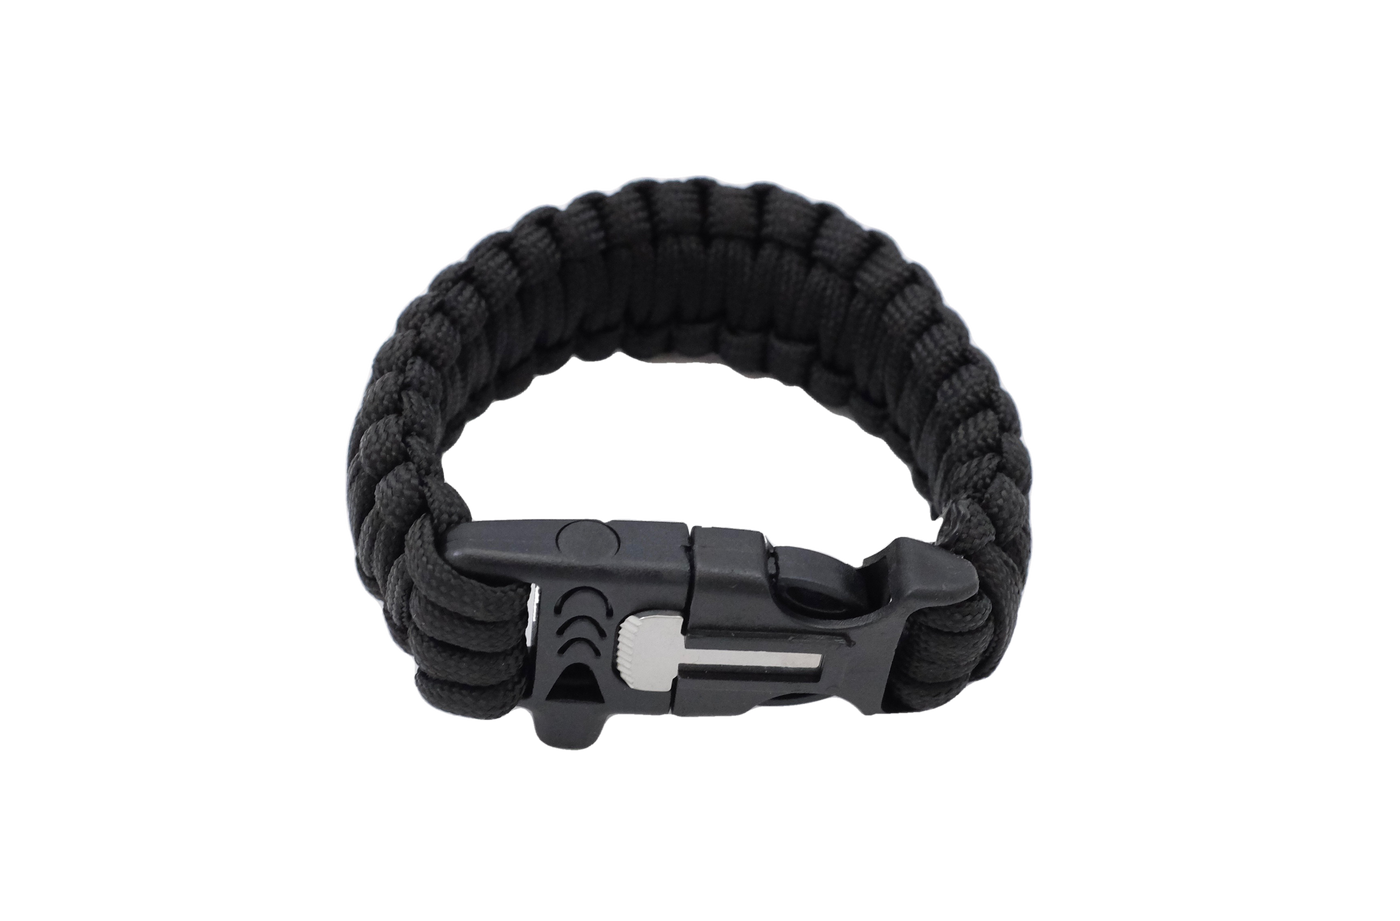 Avventura Outdoors Paracord Survival Bracelet